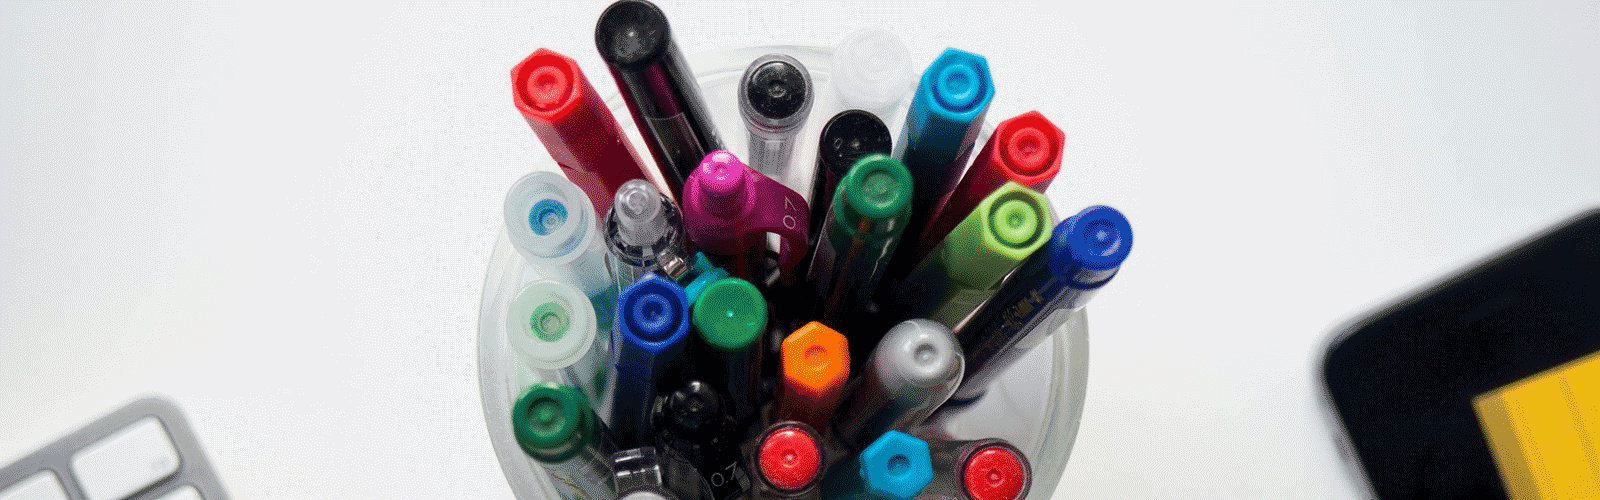 An image of a cup full of markers